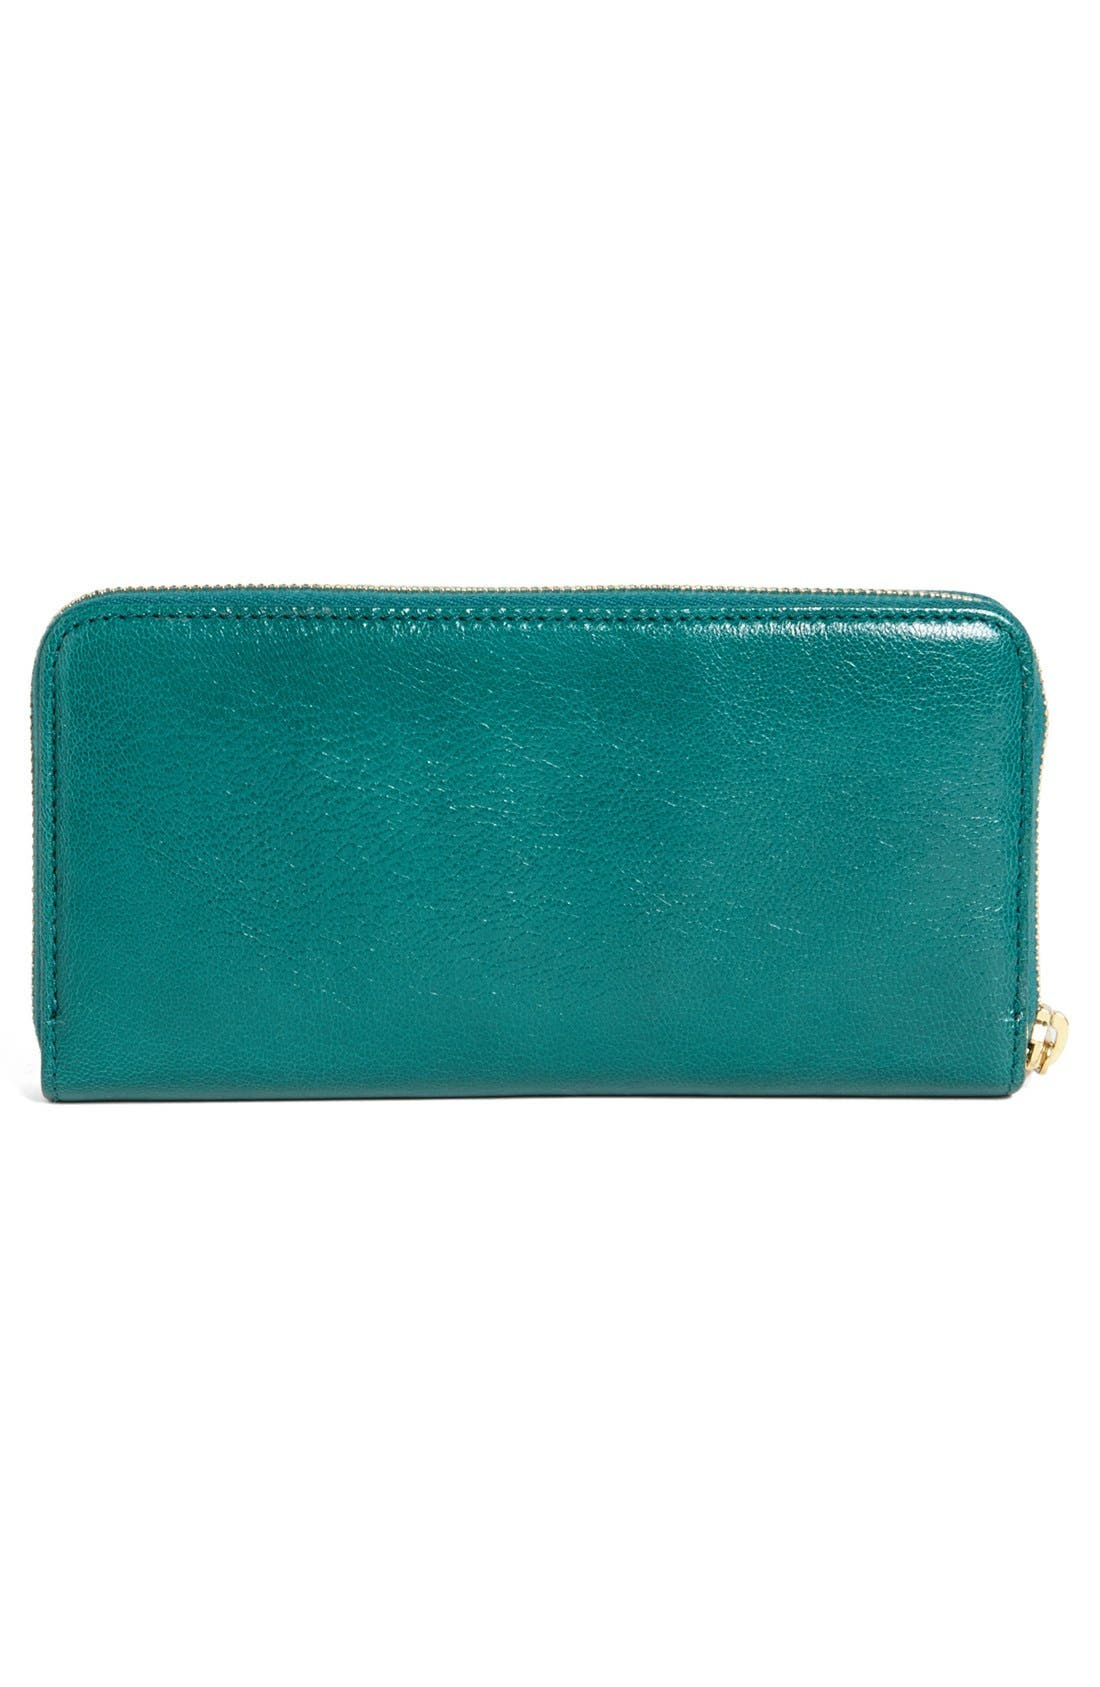 Alternate Image 3  - MARC JACOBS 'Wellington Deluxe' Leather Wallet